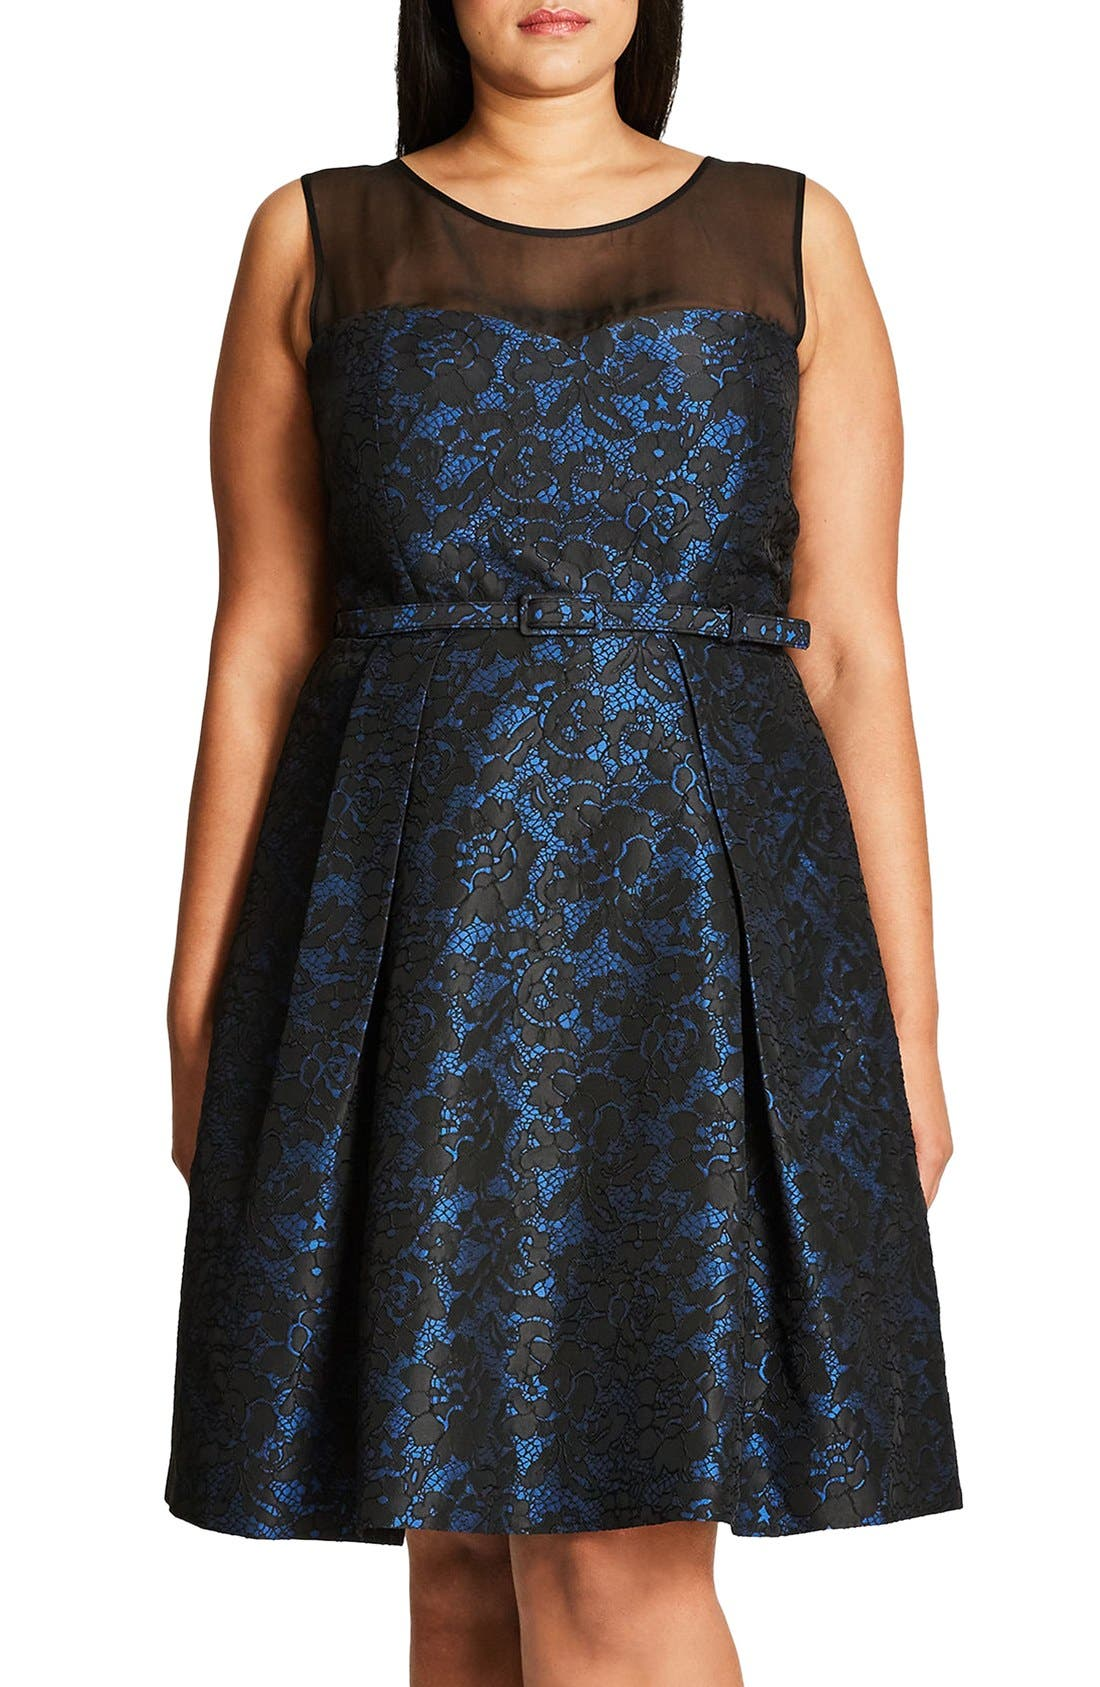 Alternate Image 1 Selected - City Chic 'After Dark' Lace Fit & Flare Dress (Plus Size)